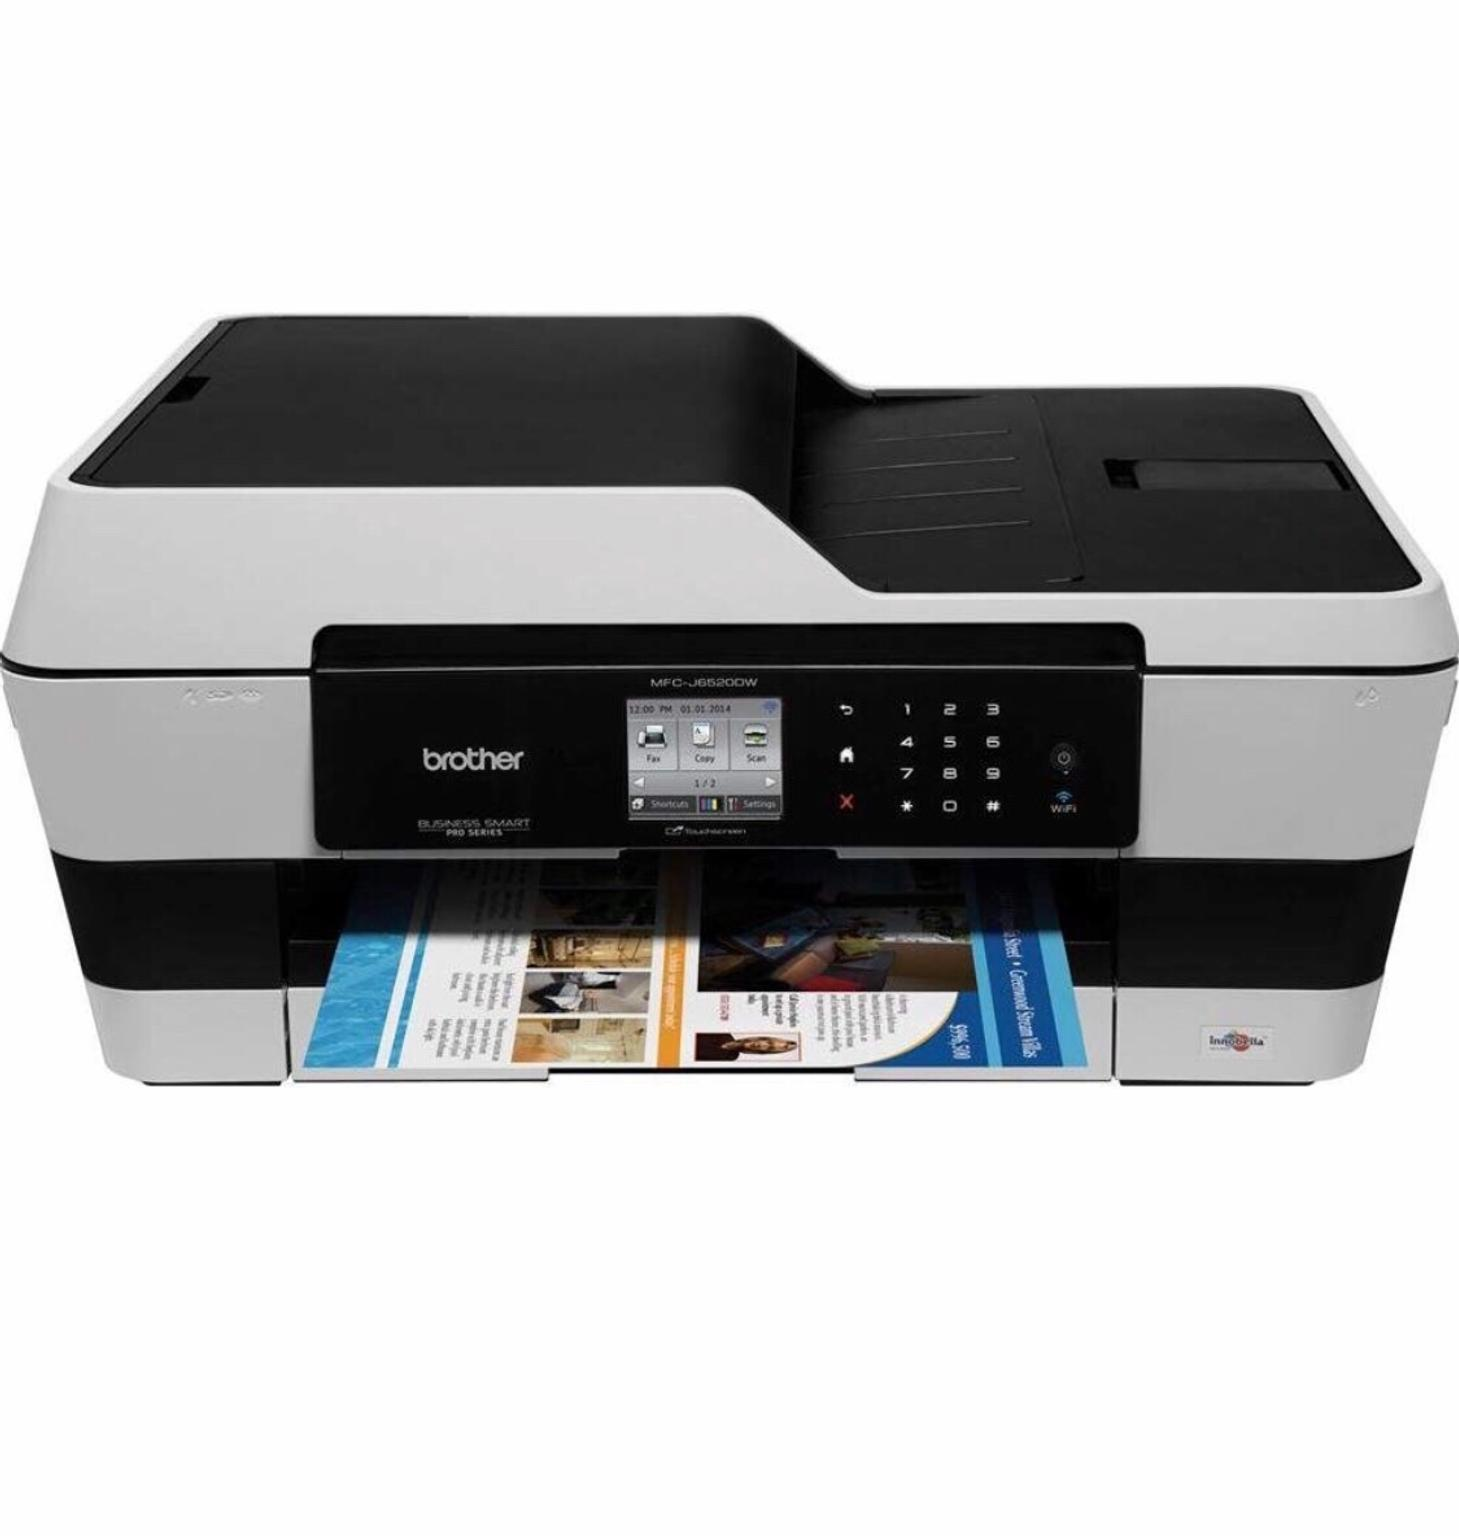 Brother A3 A4 Wireless Printer Scanner Fax